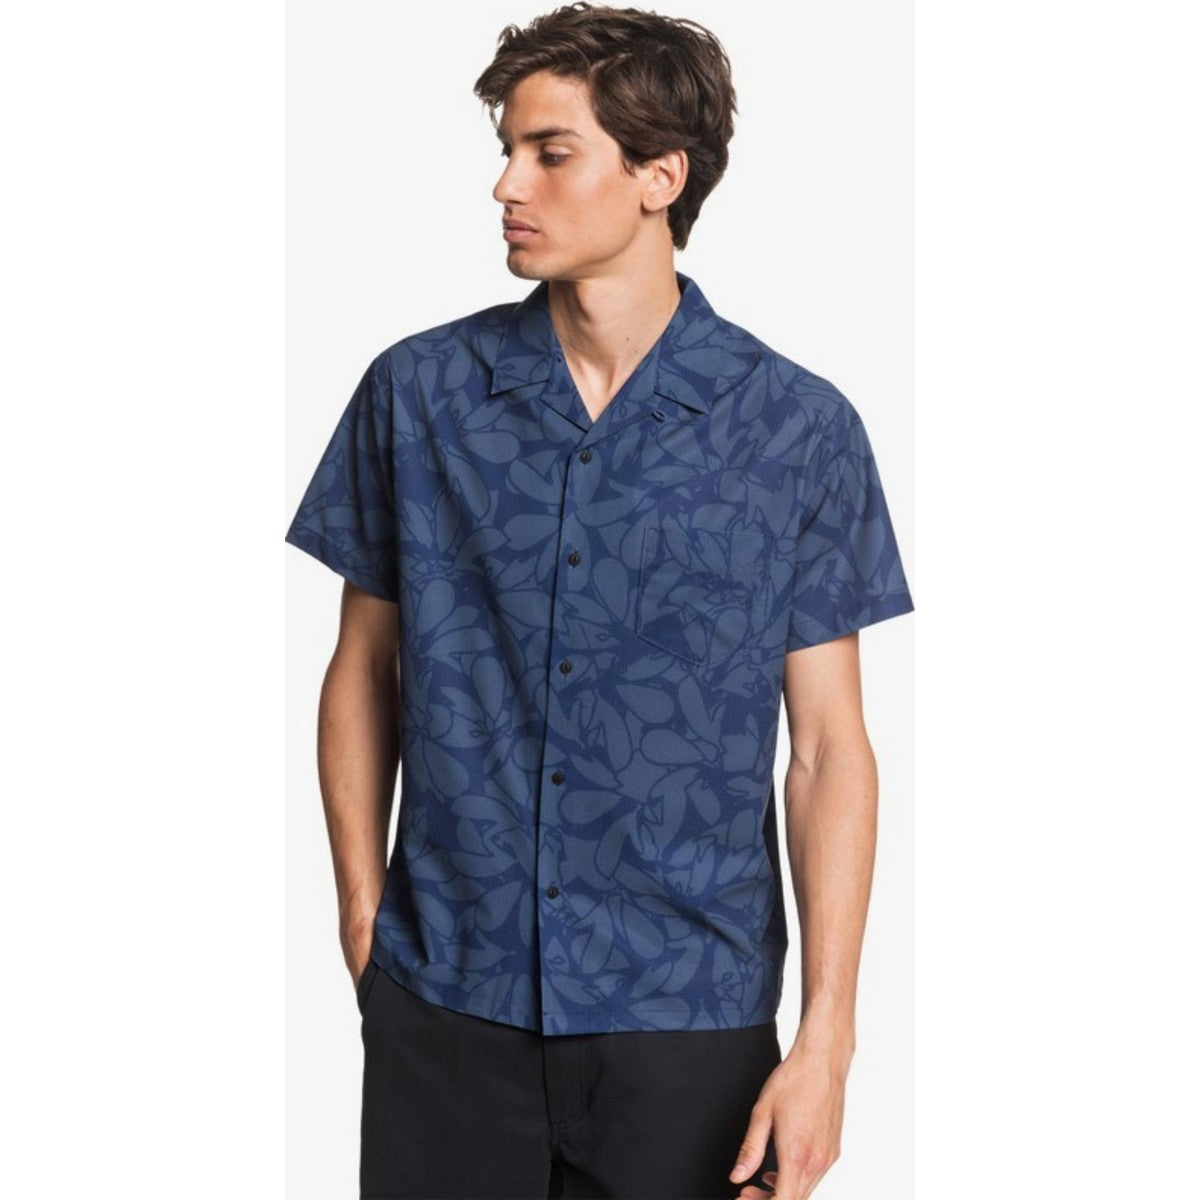 Quiksilver Waterman Floral Lake Upf 30 Short Sleeve Shirt